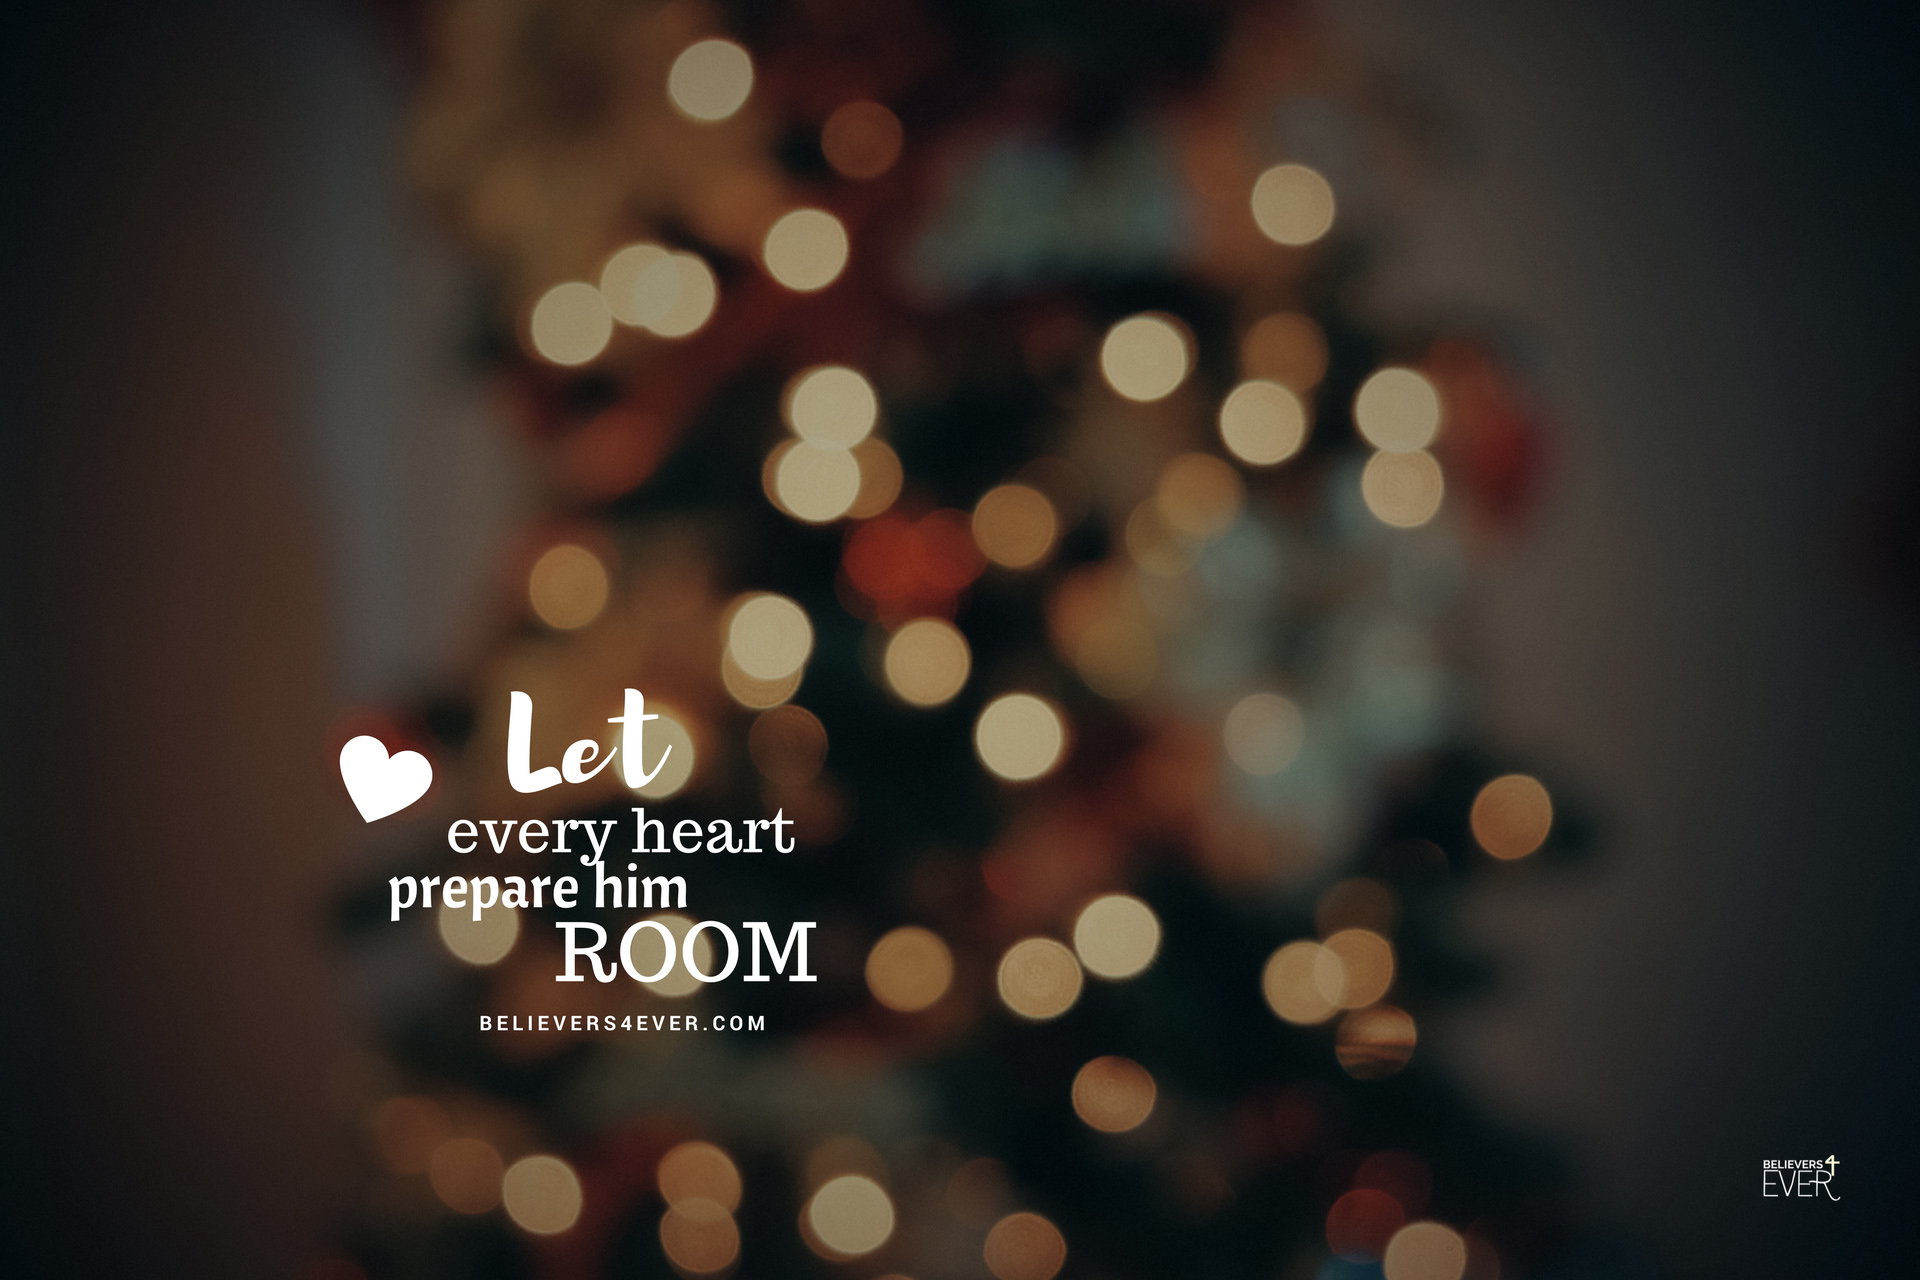 Let every heart prepare him room.